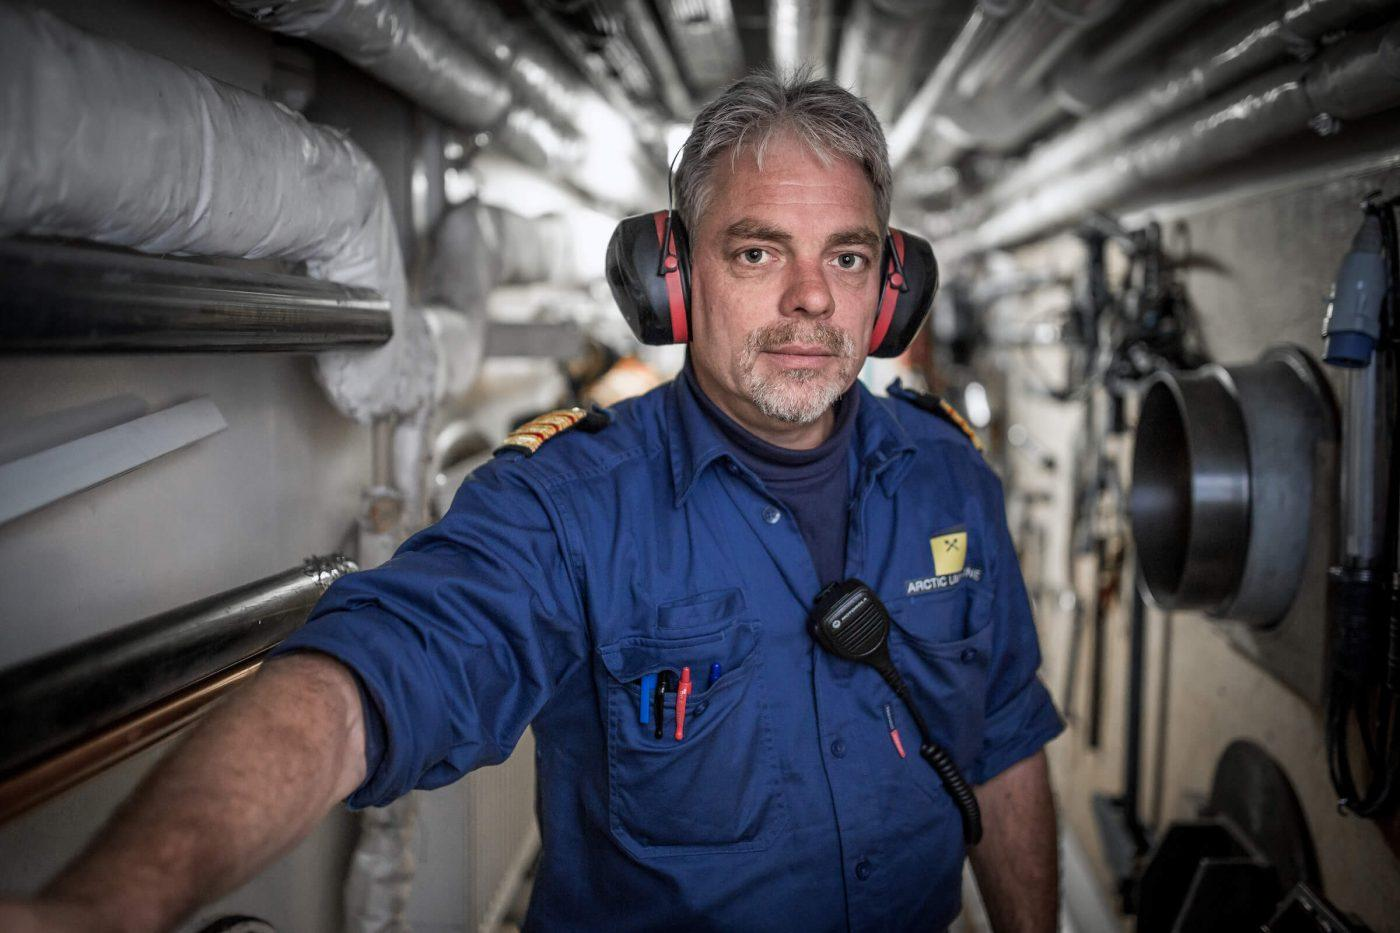 An officer from the Sarfaq Ittuk ferry in the engine room of the shipGuests in one of the cabins in Sarfaq Ittuk. Visit Greenland